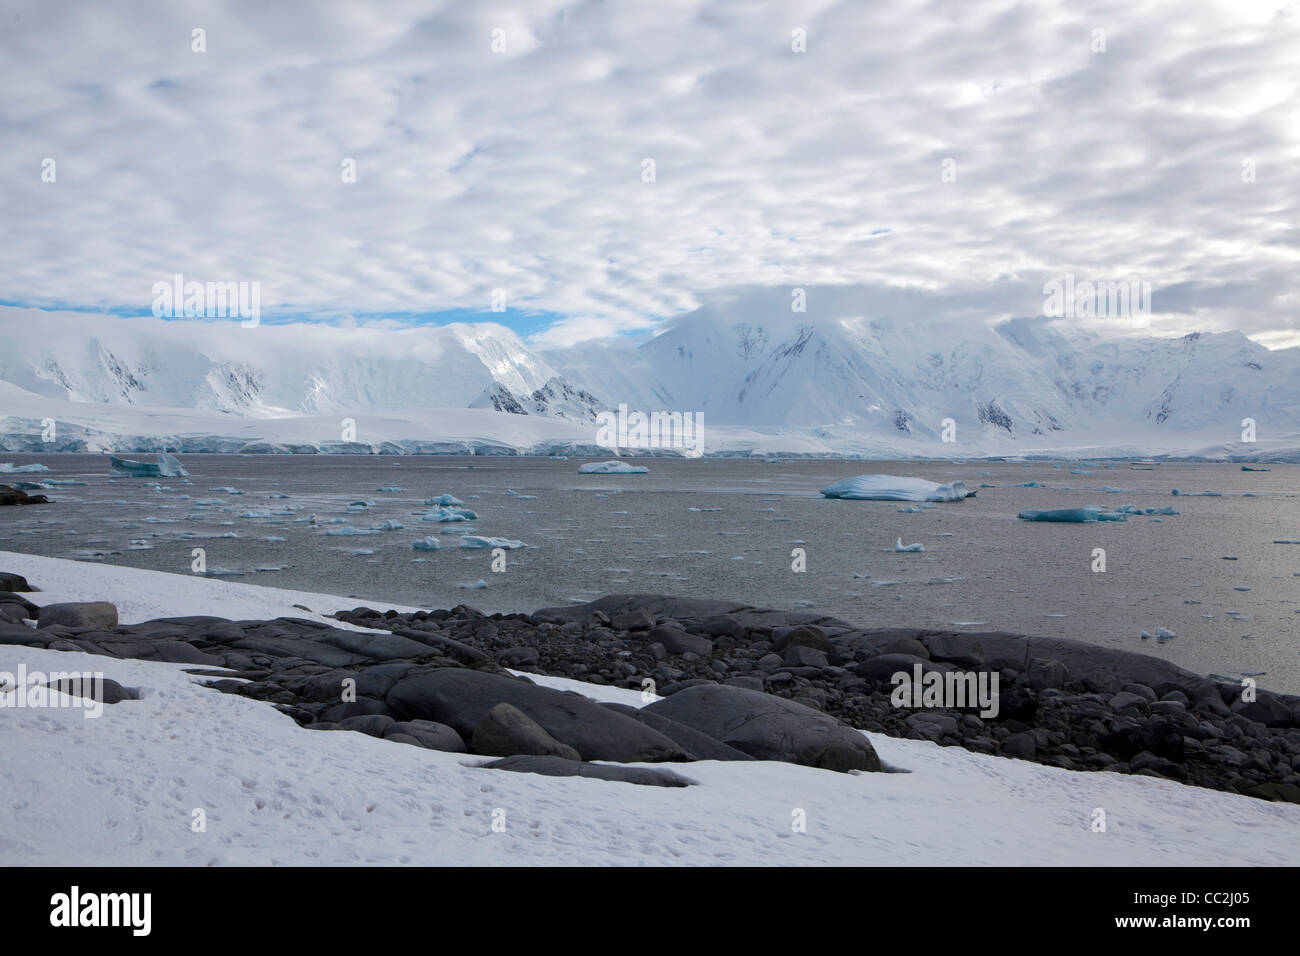 Ice bergs float into Dorian Bay, Antarctica - Stock Image